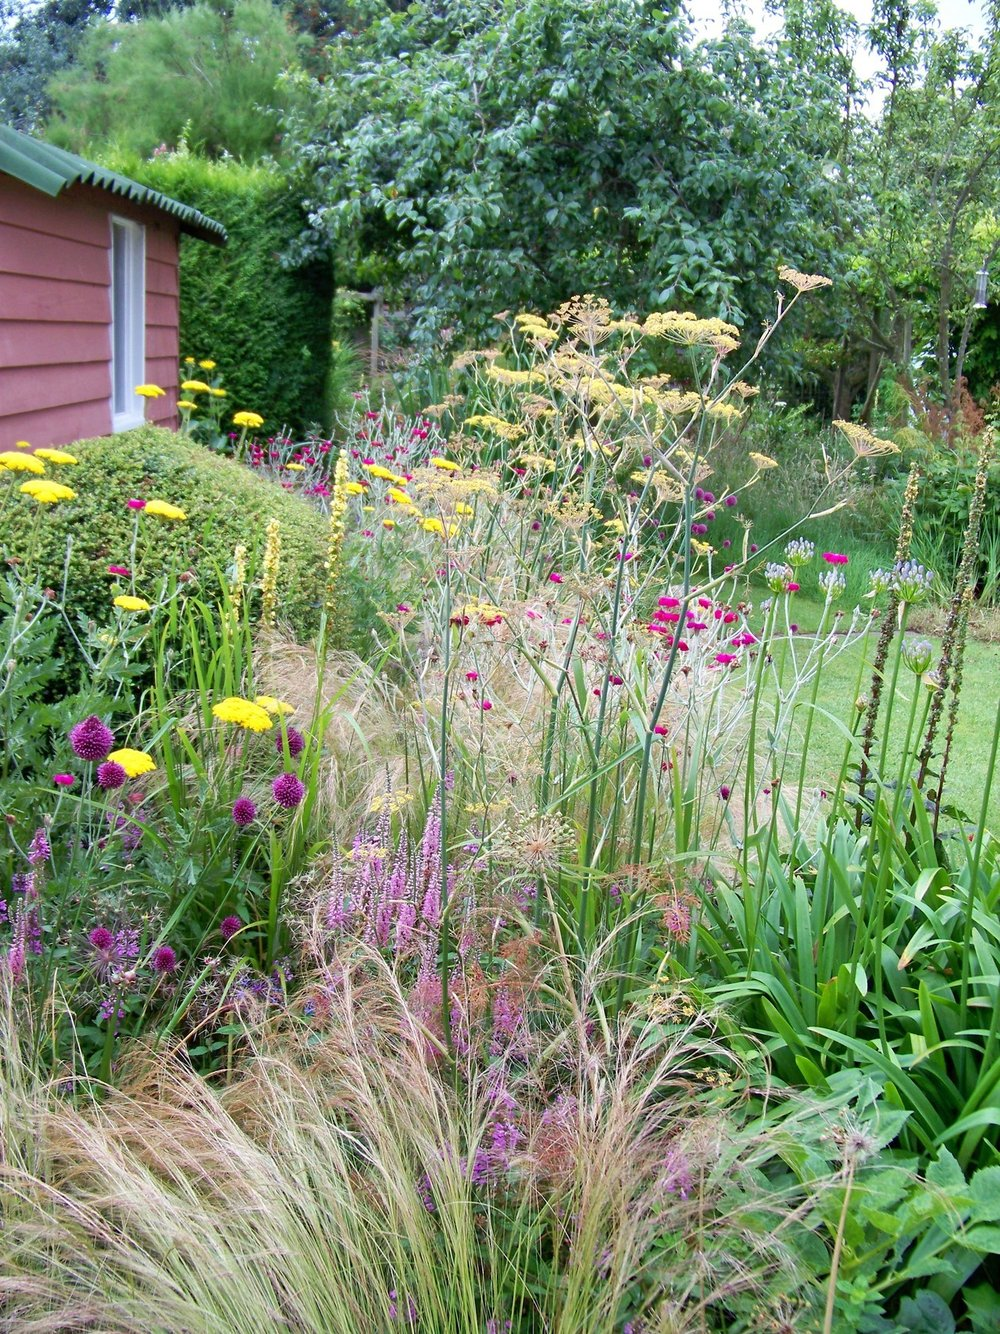 27th July 2012. In the garden early this morning.